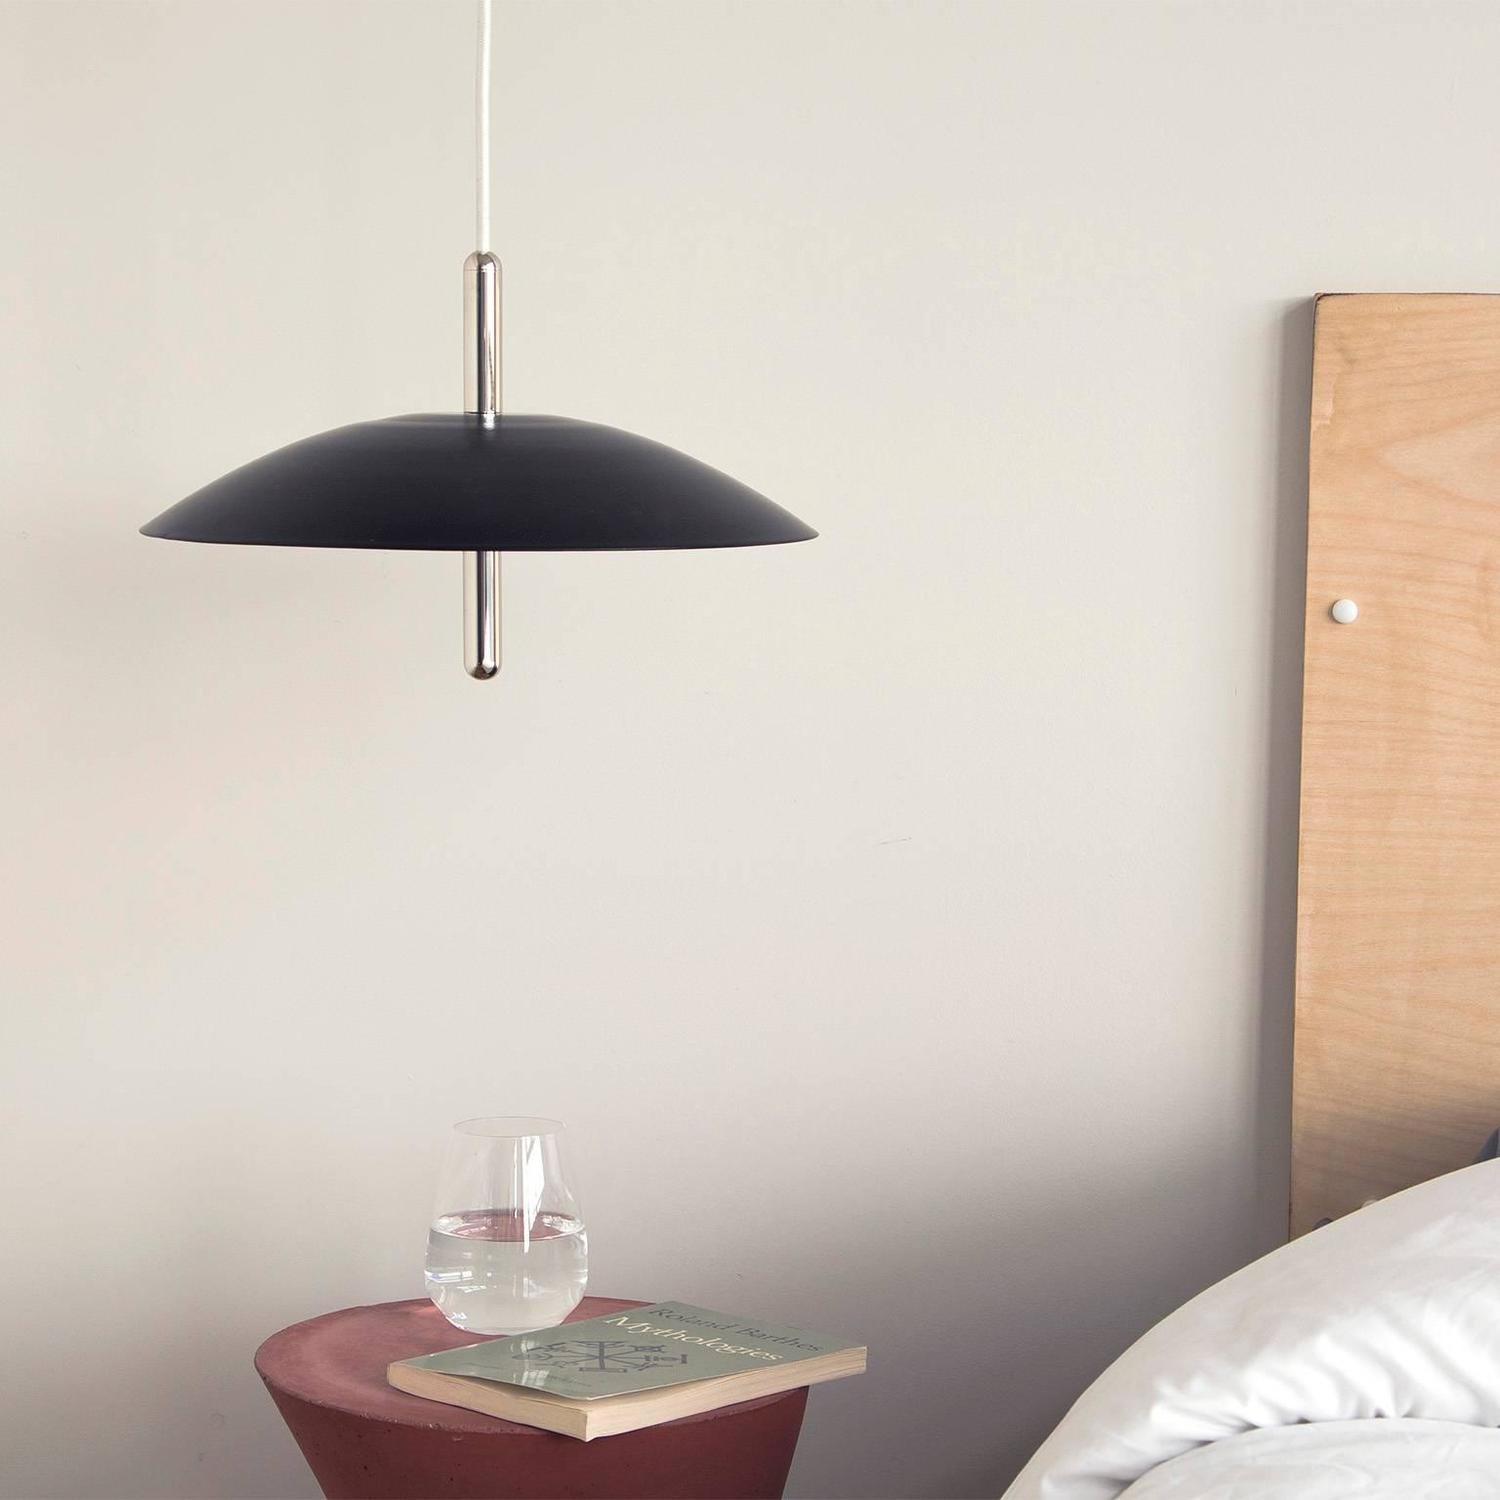 signal pendant light black with nickel accents modern